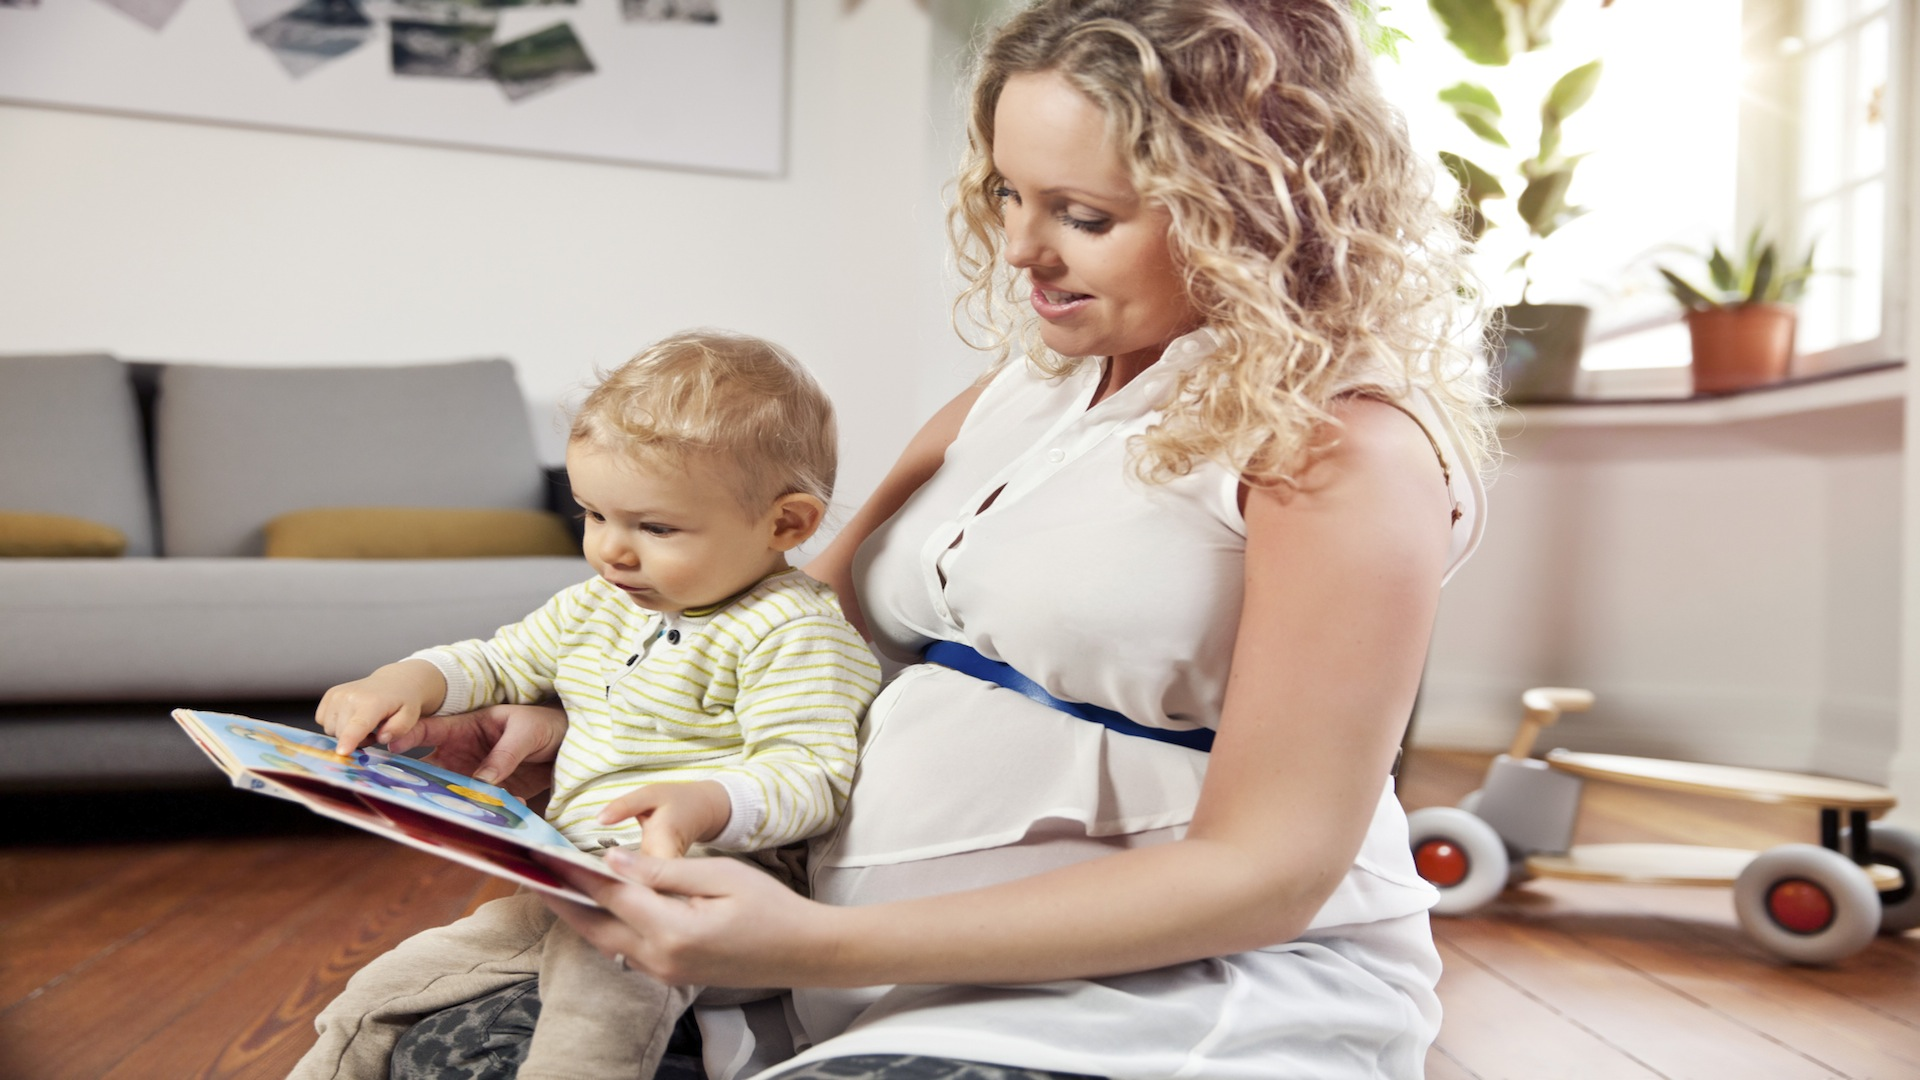 Pregnant woman reading baby book